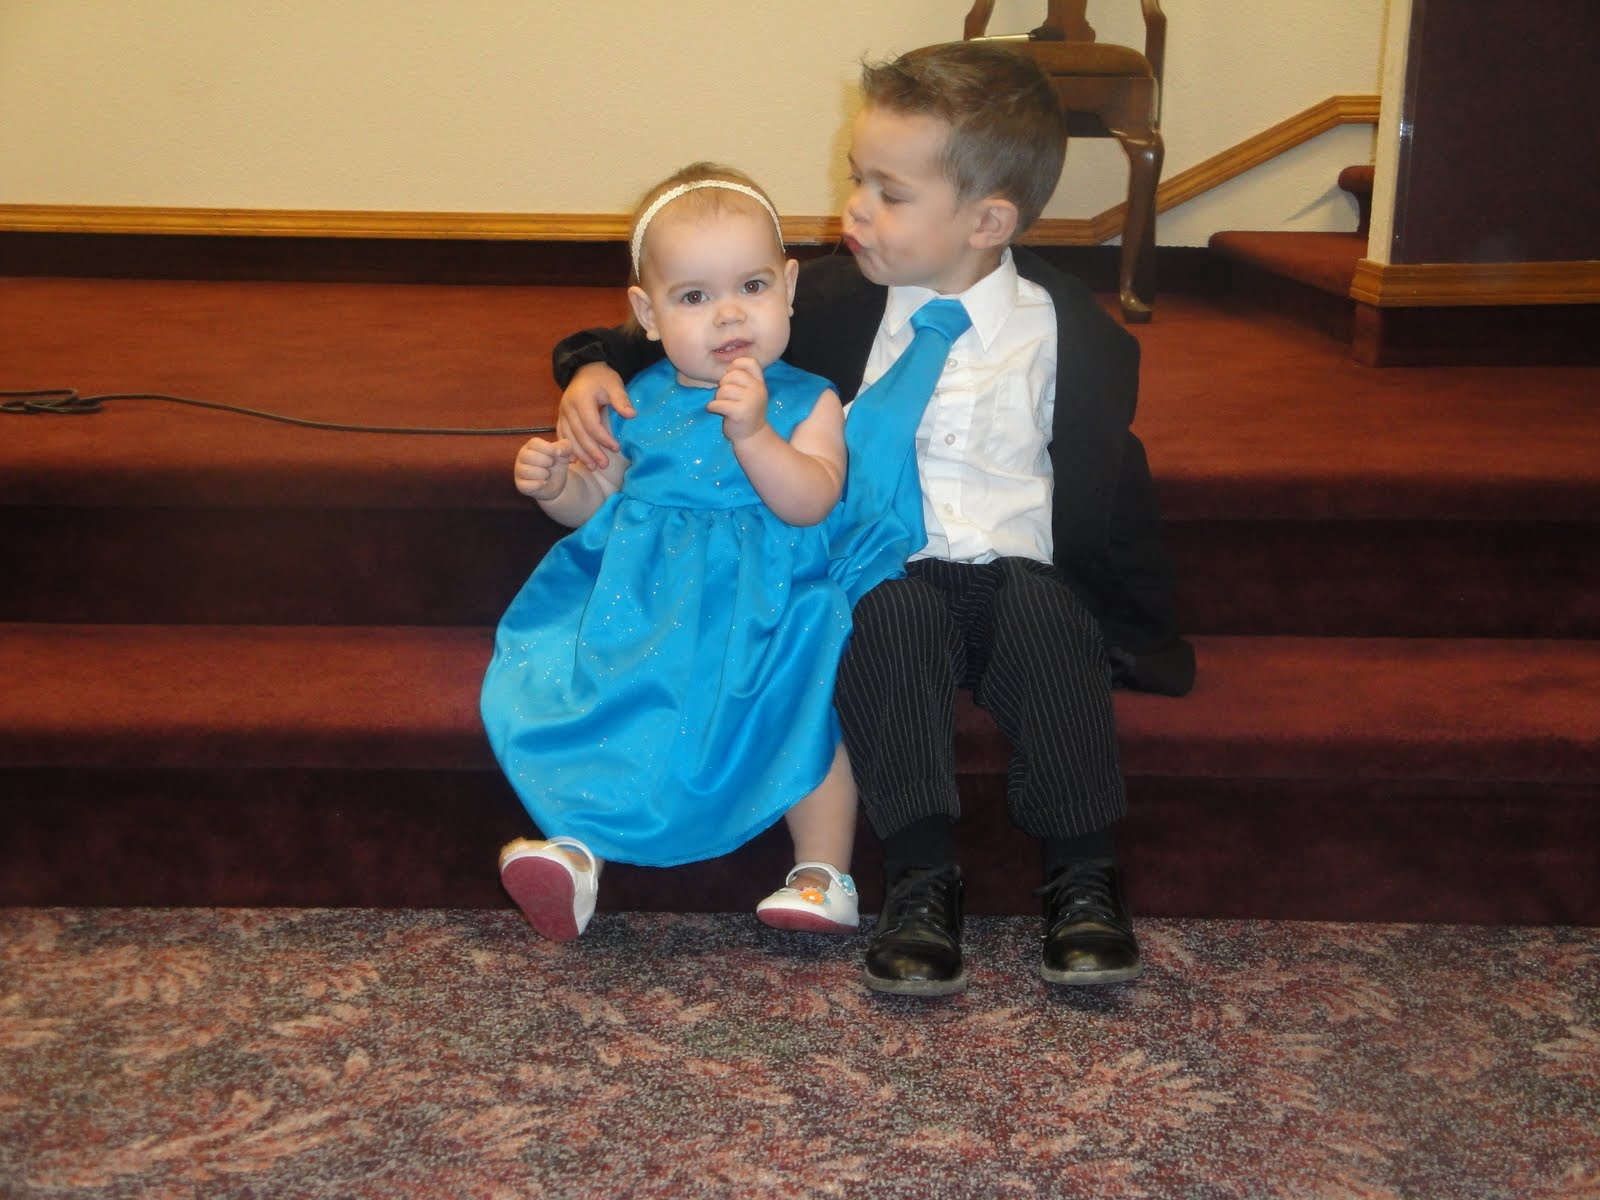 55b9a69740ece As promised, here are some more pictures of the kiddos in their new duds.  You'll have to forgive the so-so photos, they were taken with my point &  shoot and ...